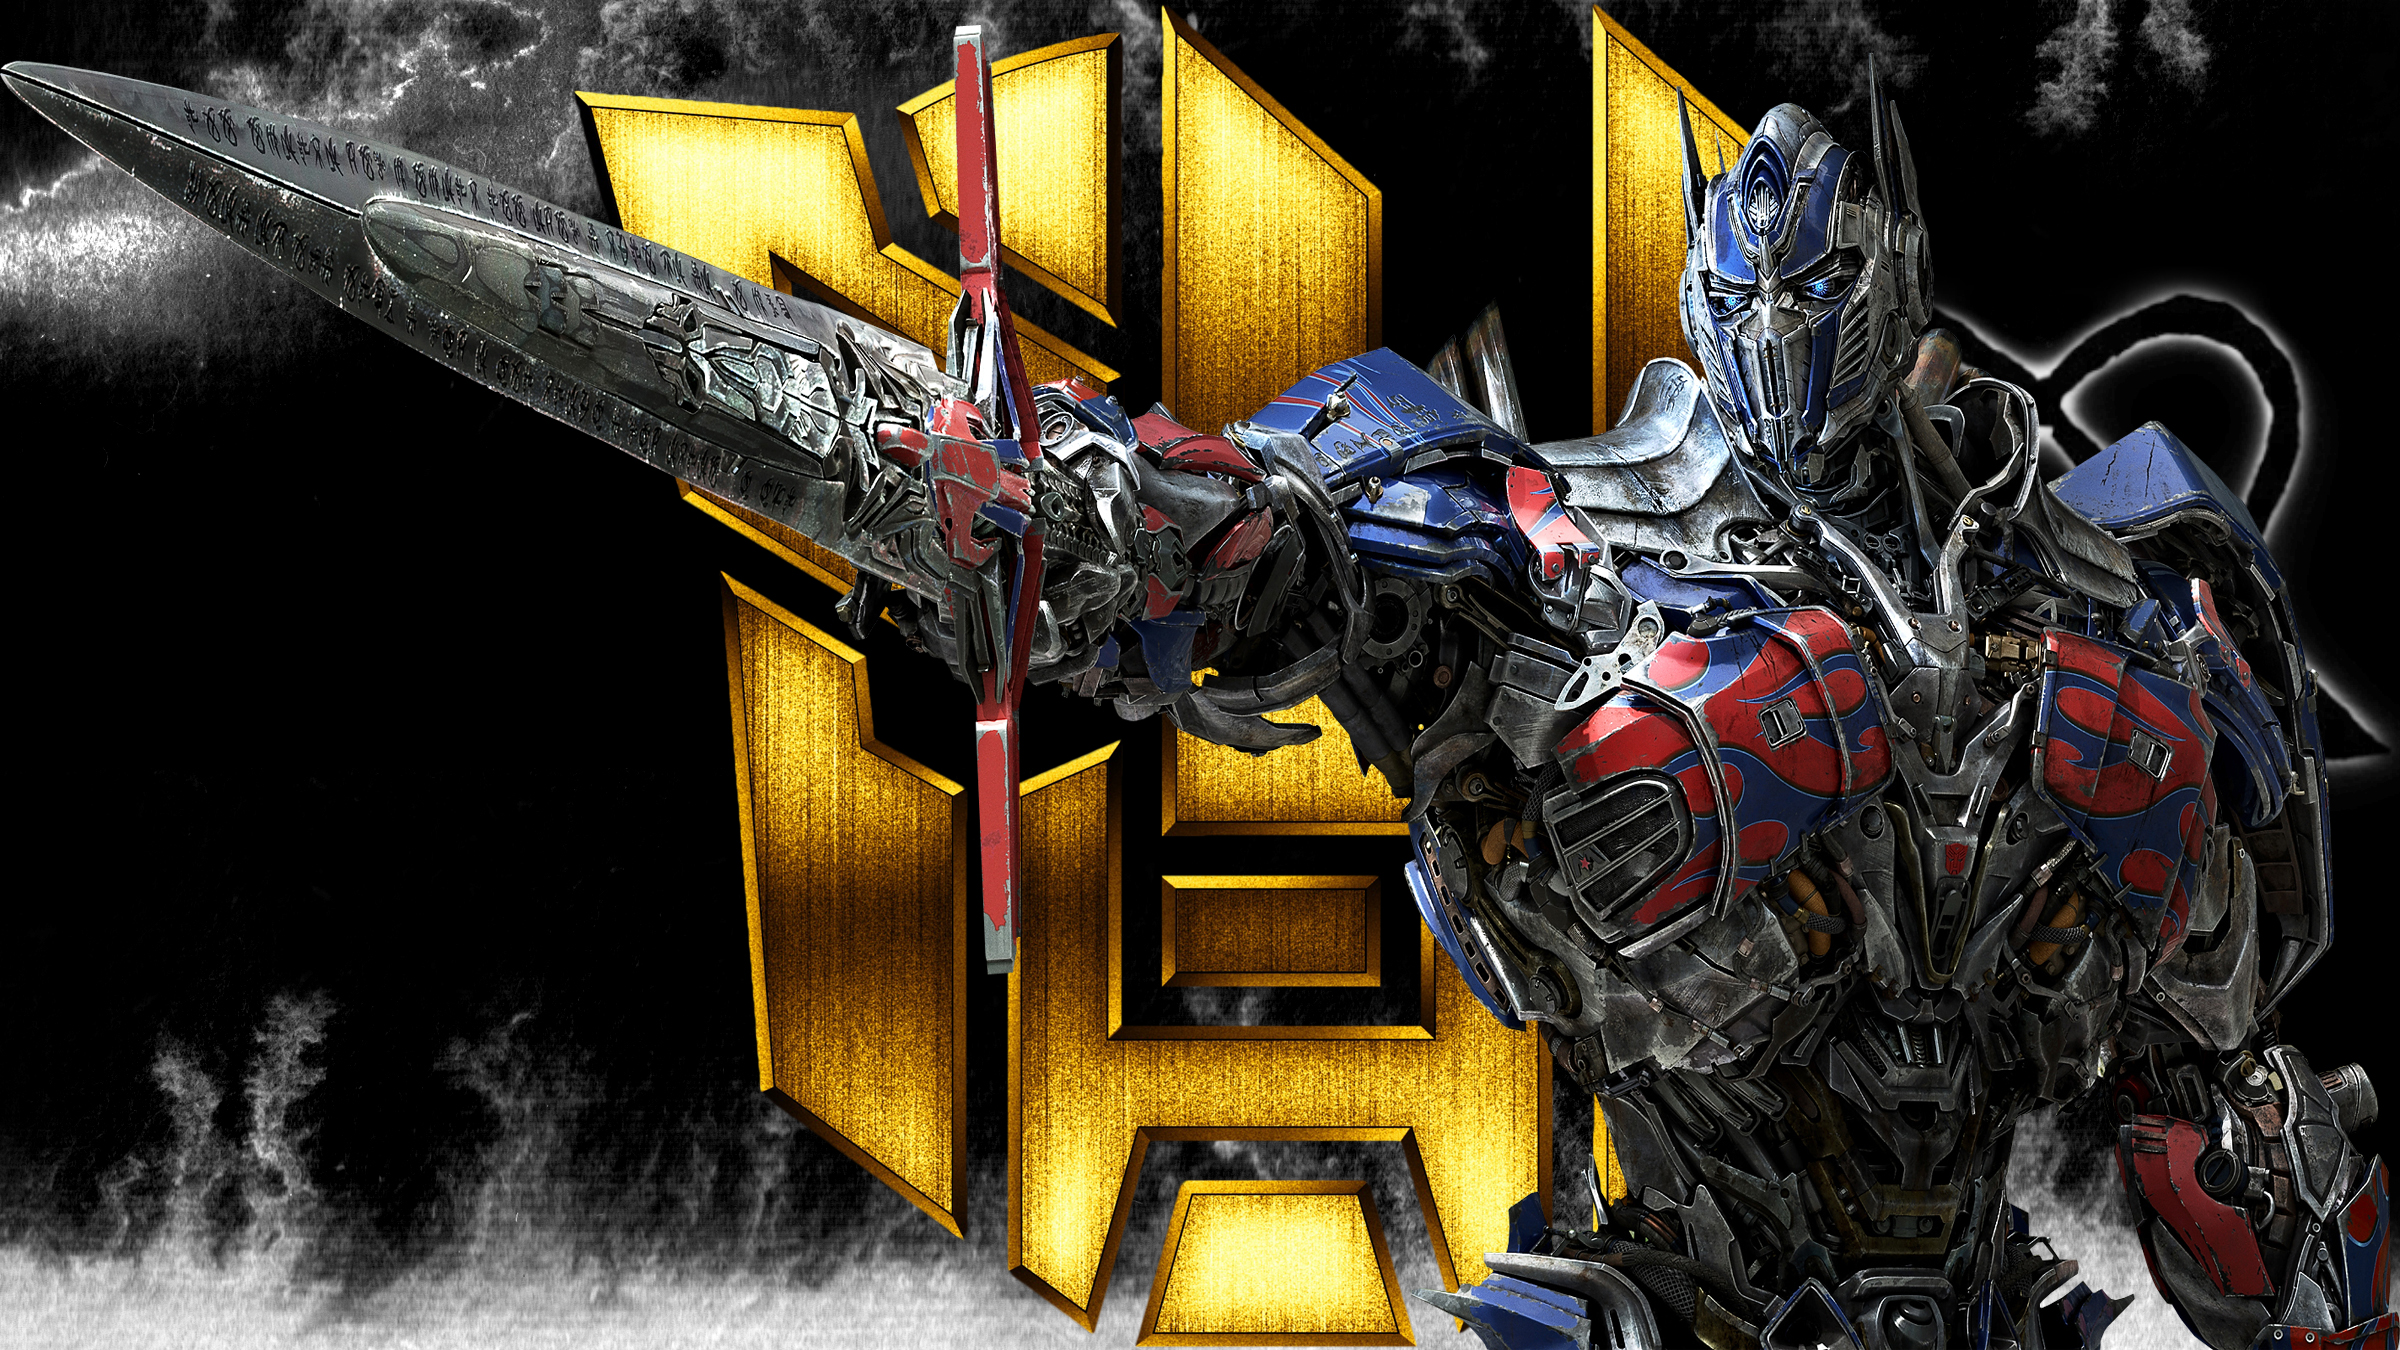 TF 4 Age Of Extinction Optimus Prime Wallpaper By RajivCR7